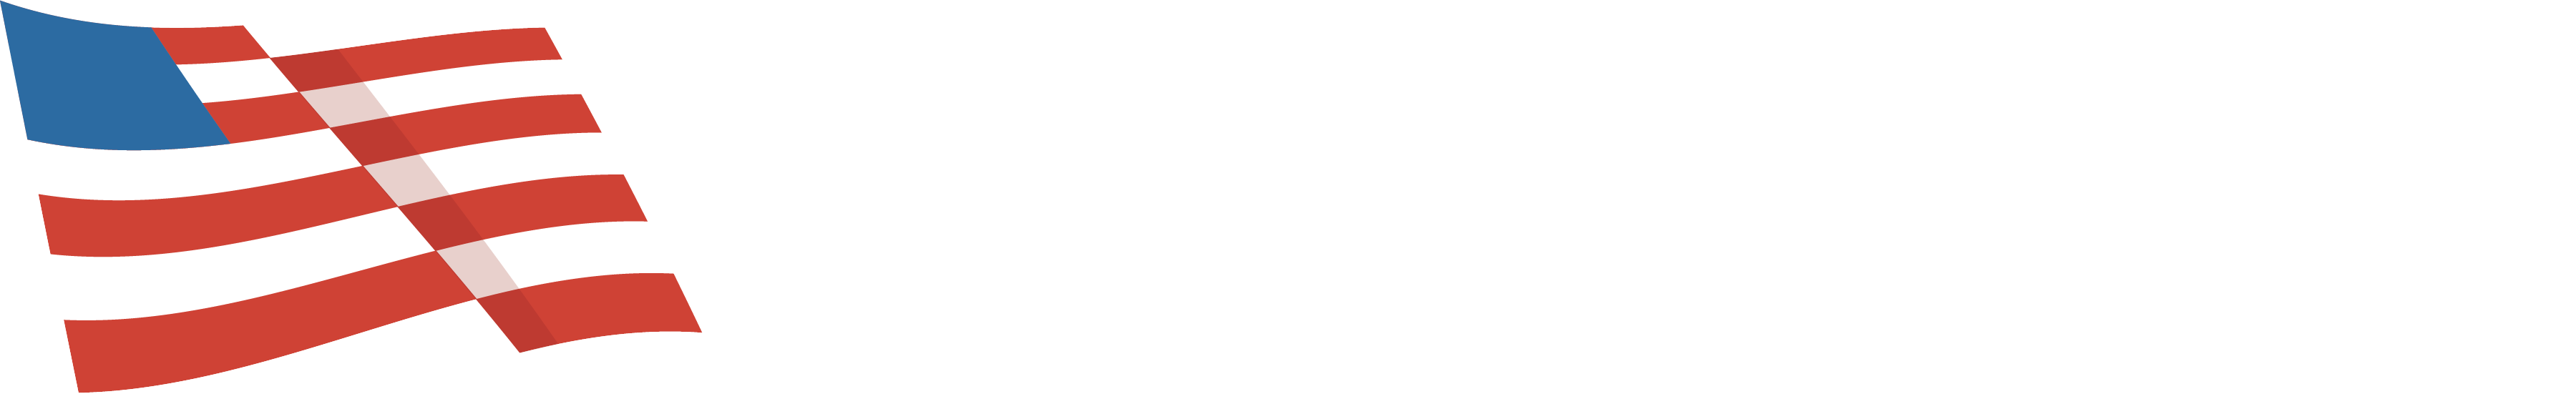 Advancing American Freedom